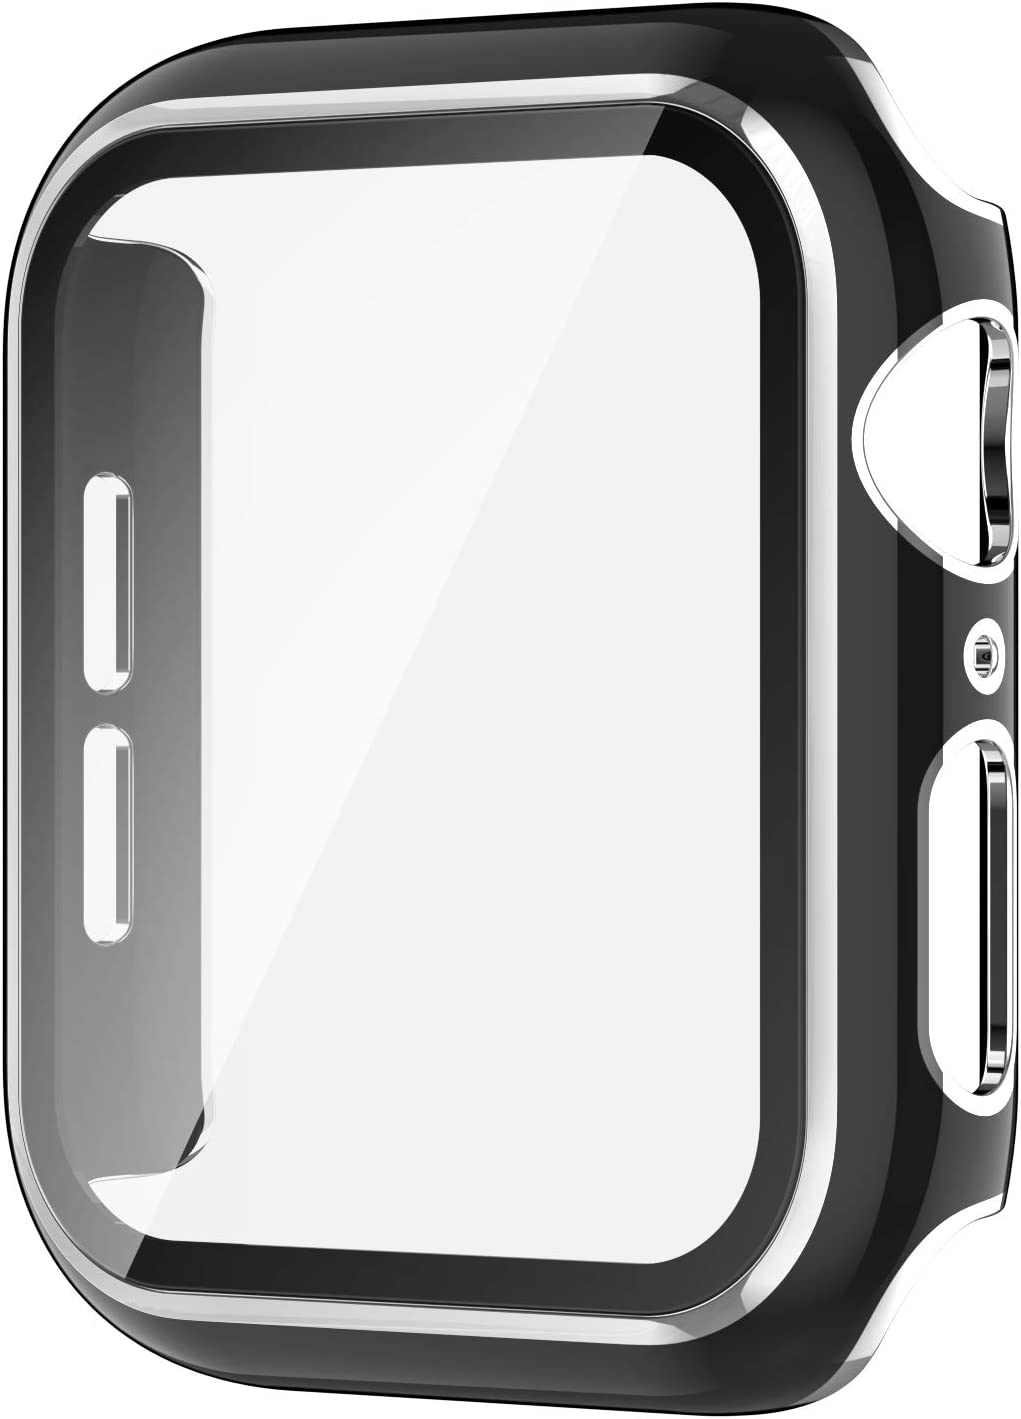 AVIDDA Case Compatible Apple Watch 42mm Built-in Tempered Glass Screen Protector, Silver Edge Black Bumper Full Coverage HD Clear Protective Film Cover for Women Men iWatch 42mm Series 3/2/1